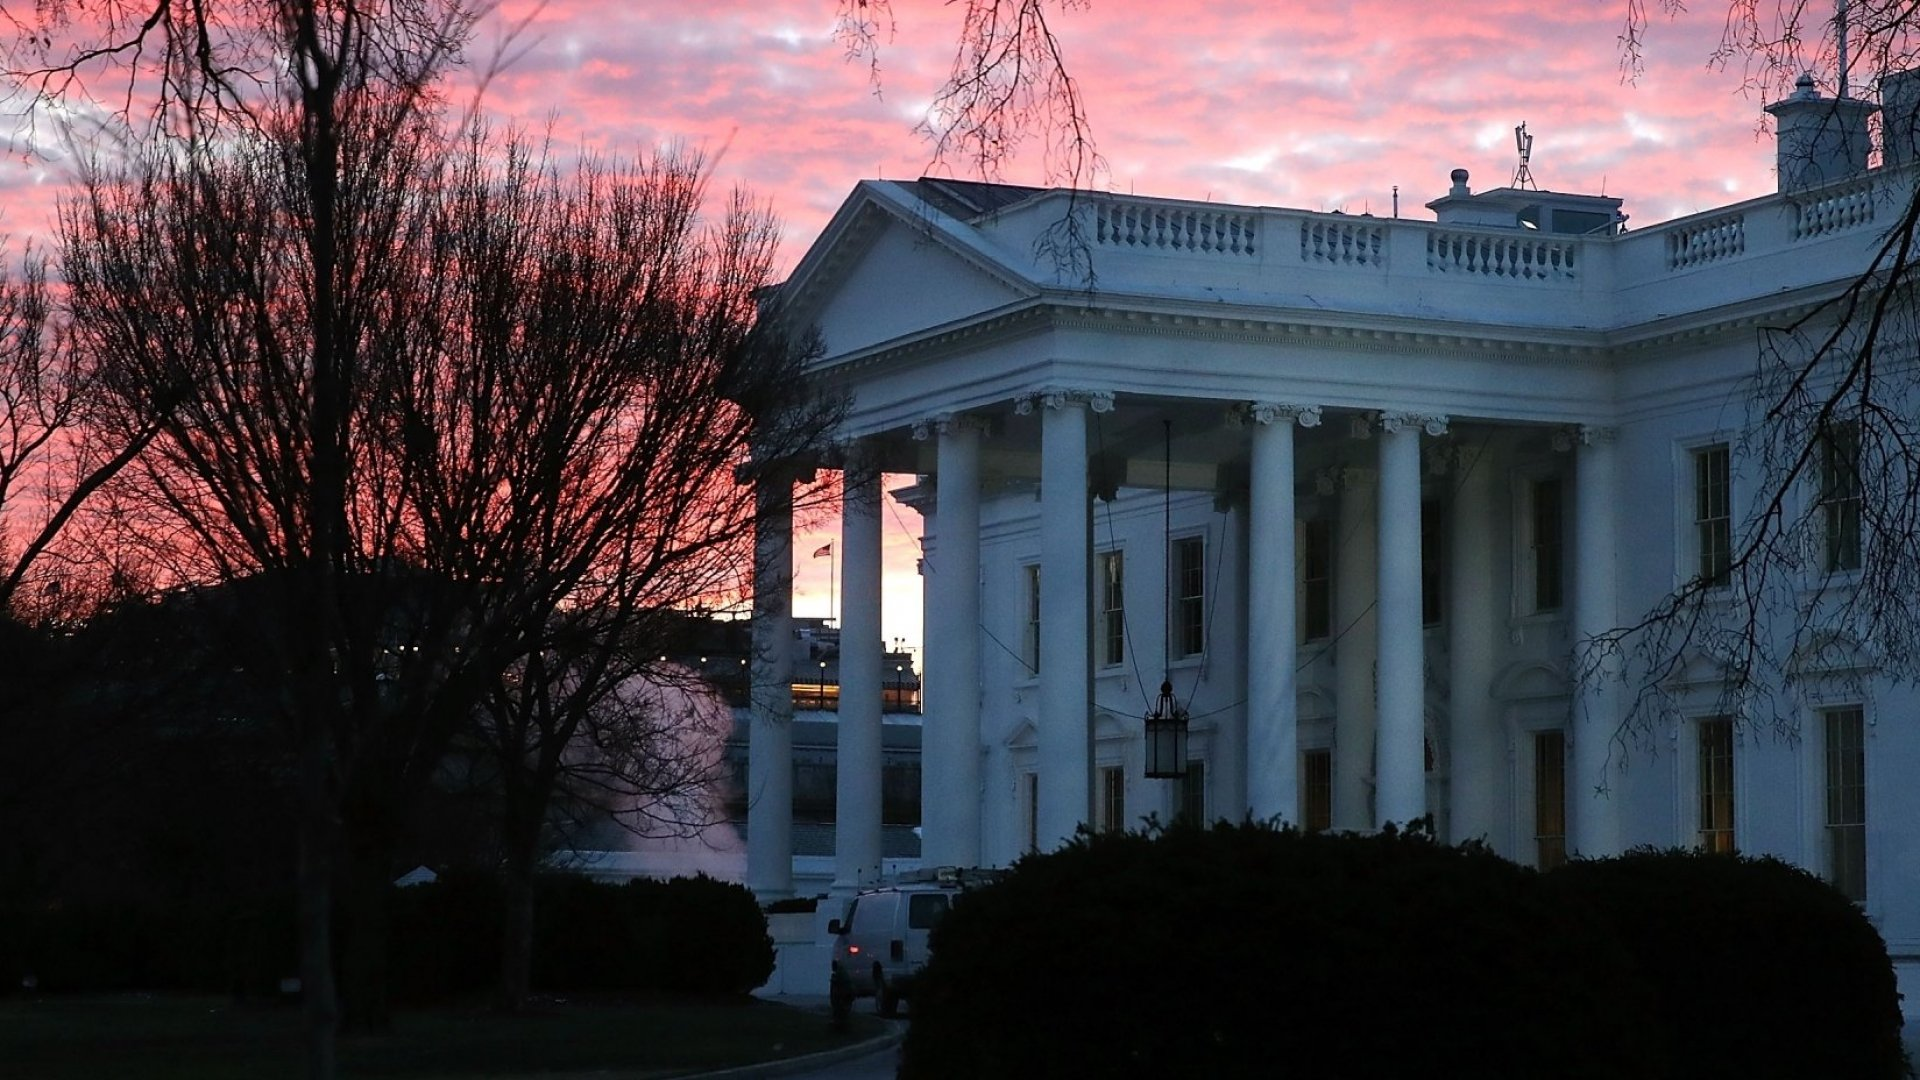 Will there be progress at the White House?